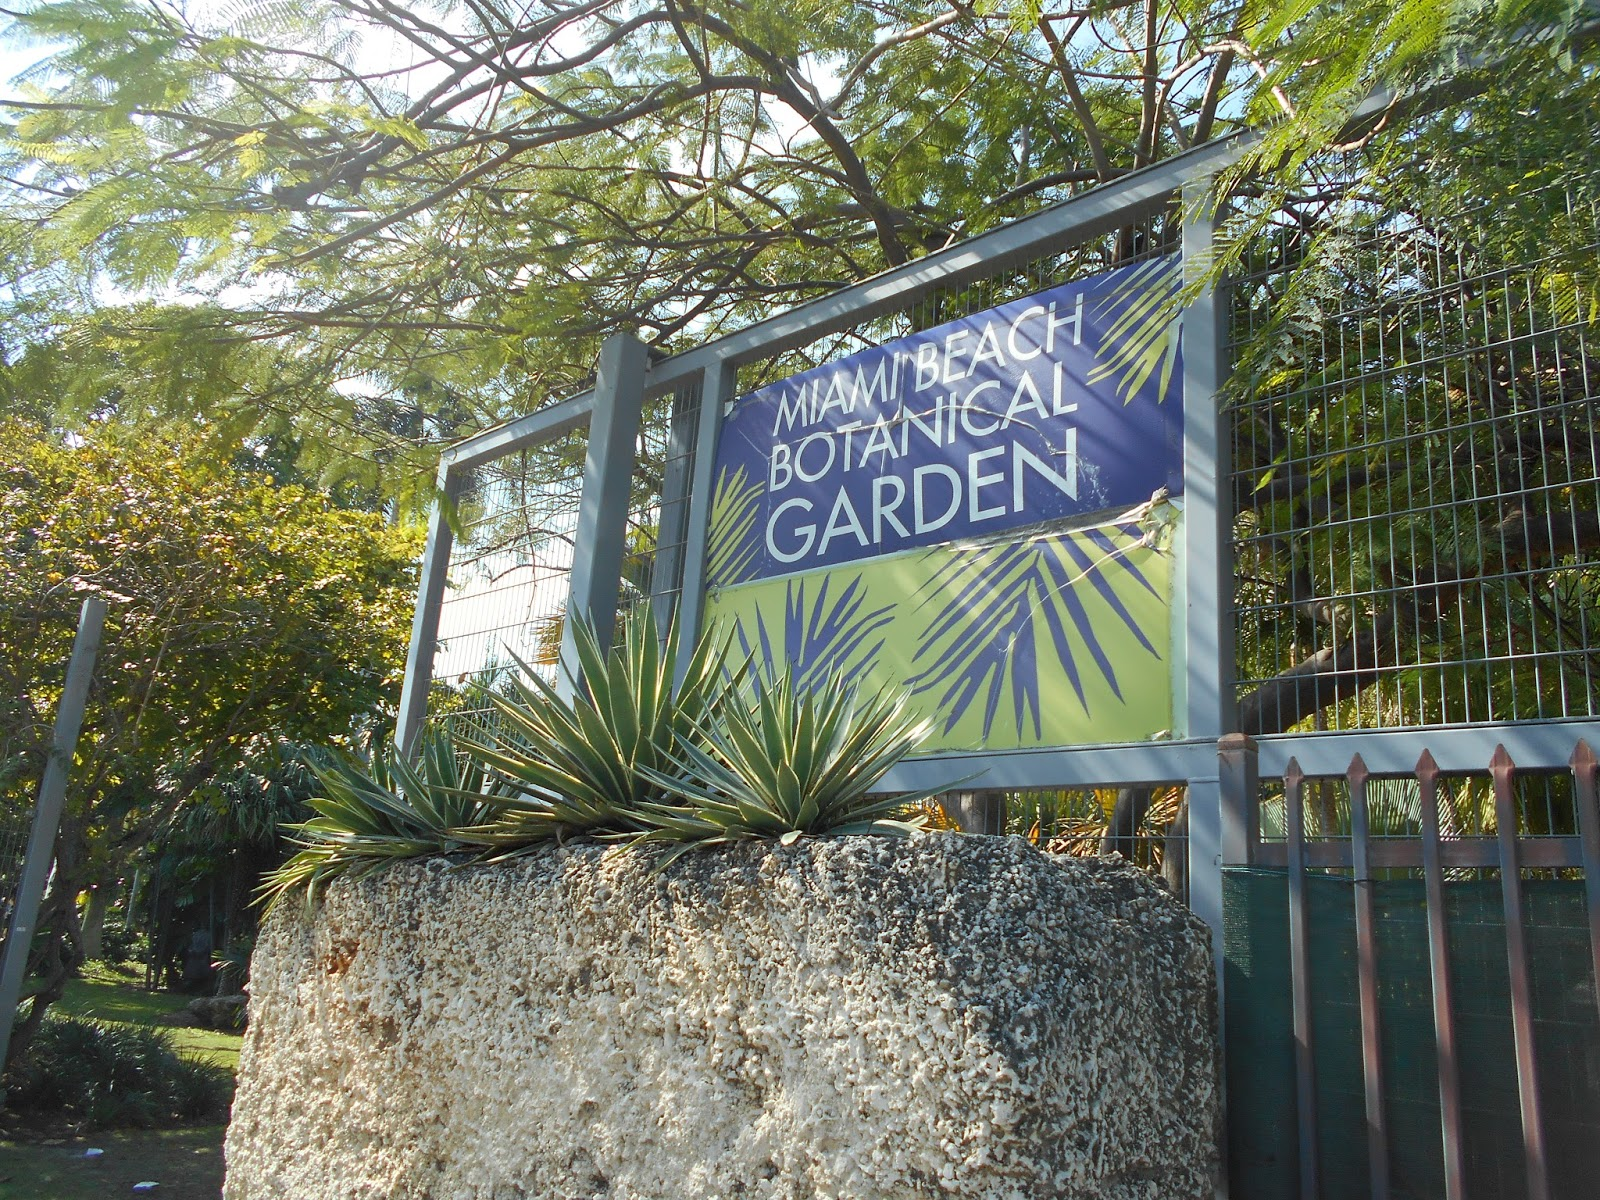 ... Miami Beach Botanical Garden. A Surprisingly Small, 2.5 Acre Paradise,  It Is Home To Tropical Plants, Trees, Shrubs And More Importantly A Much  Needed ...